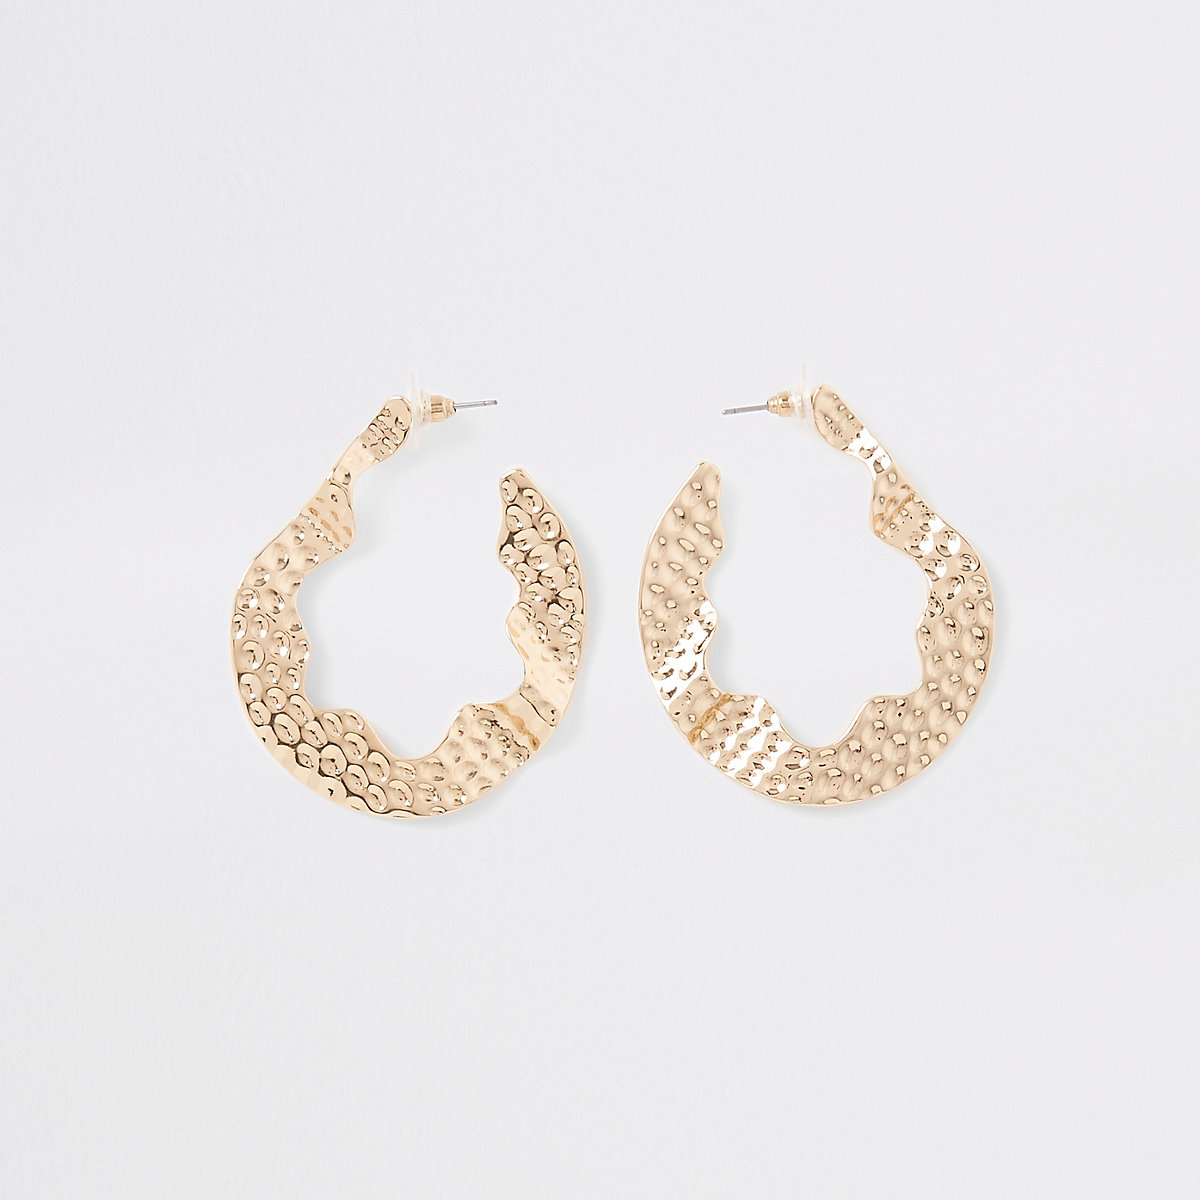 Gold color battered hoop earrings